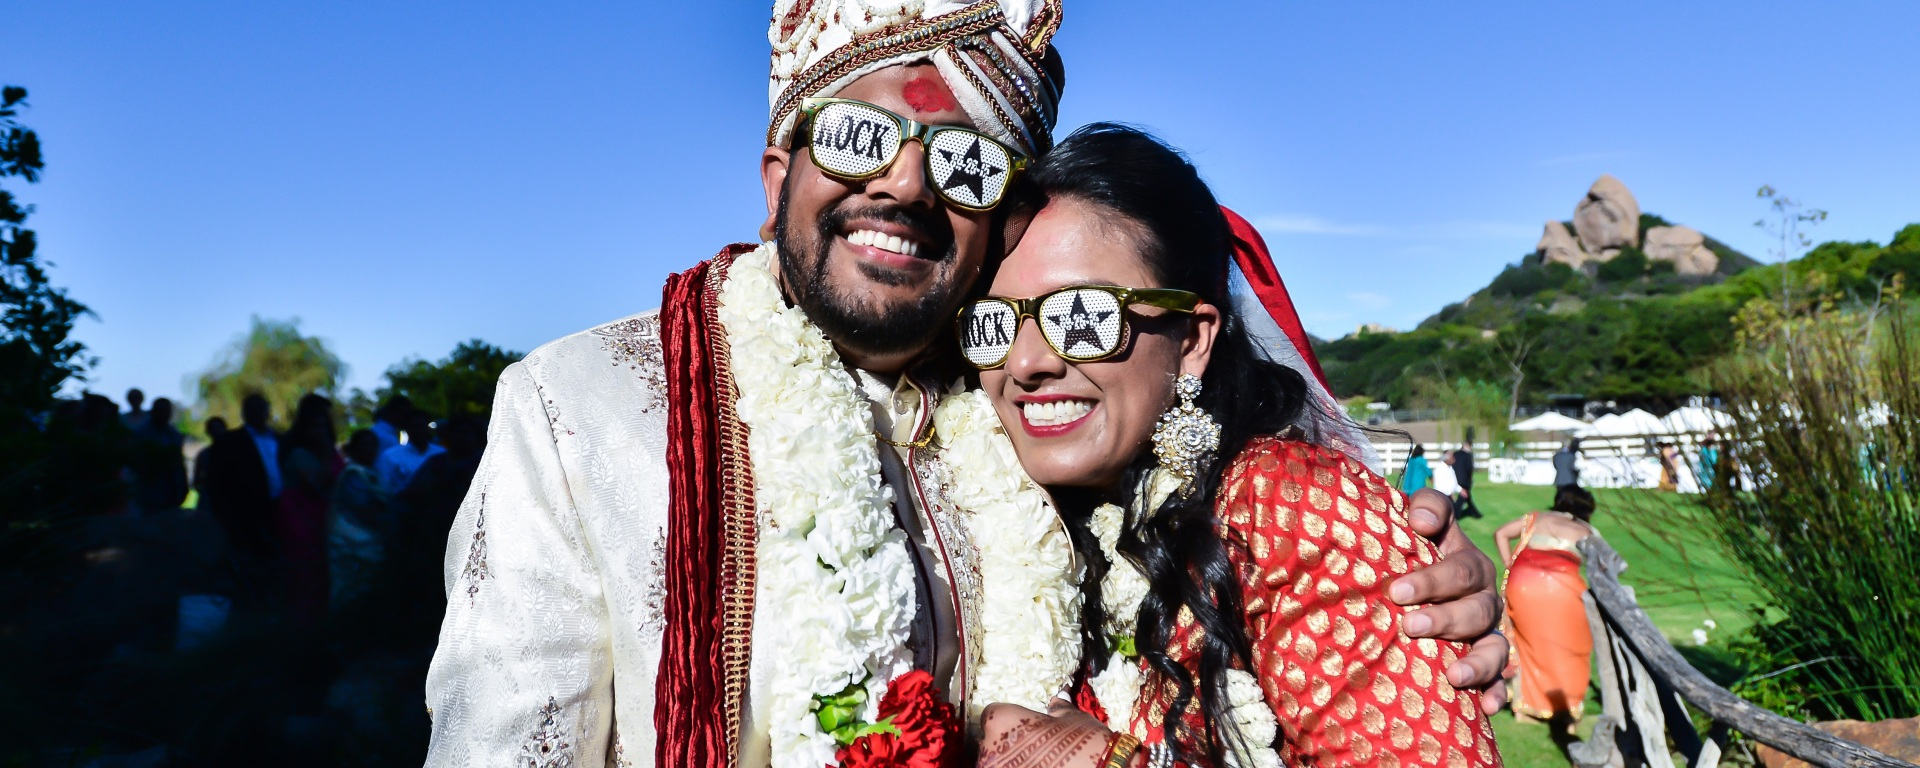 Indian Bride And Groom Wearing Funny Sunglasses Happily Posing For The Camera At Their Hindu